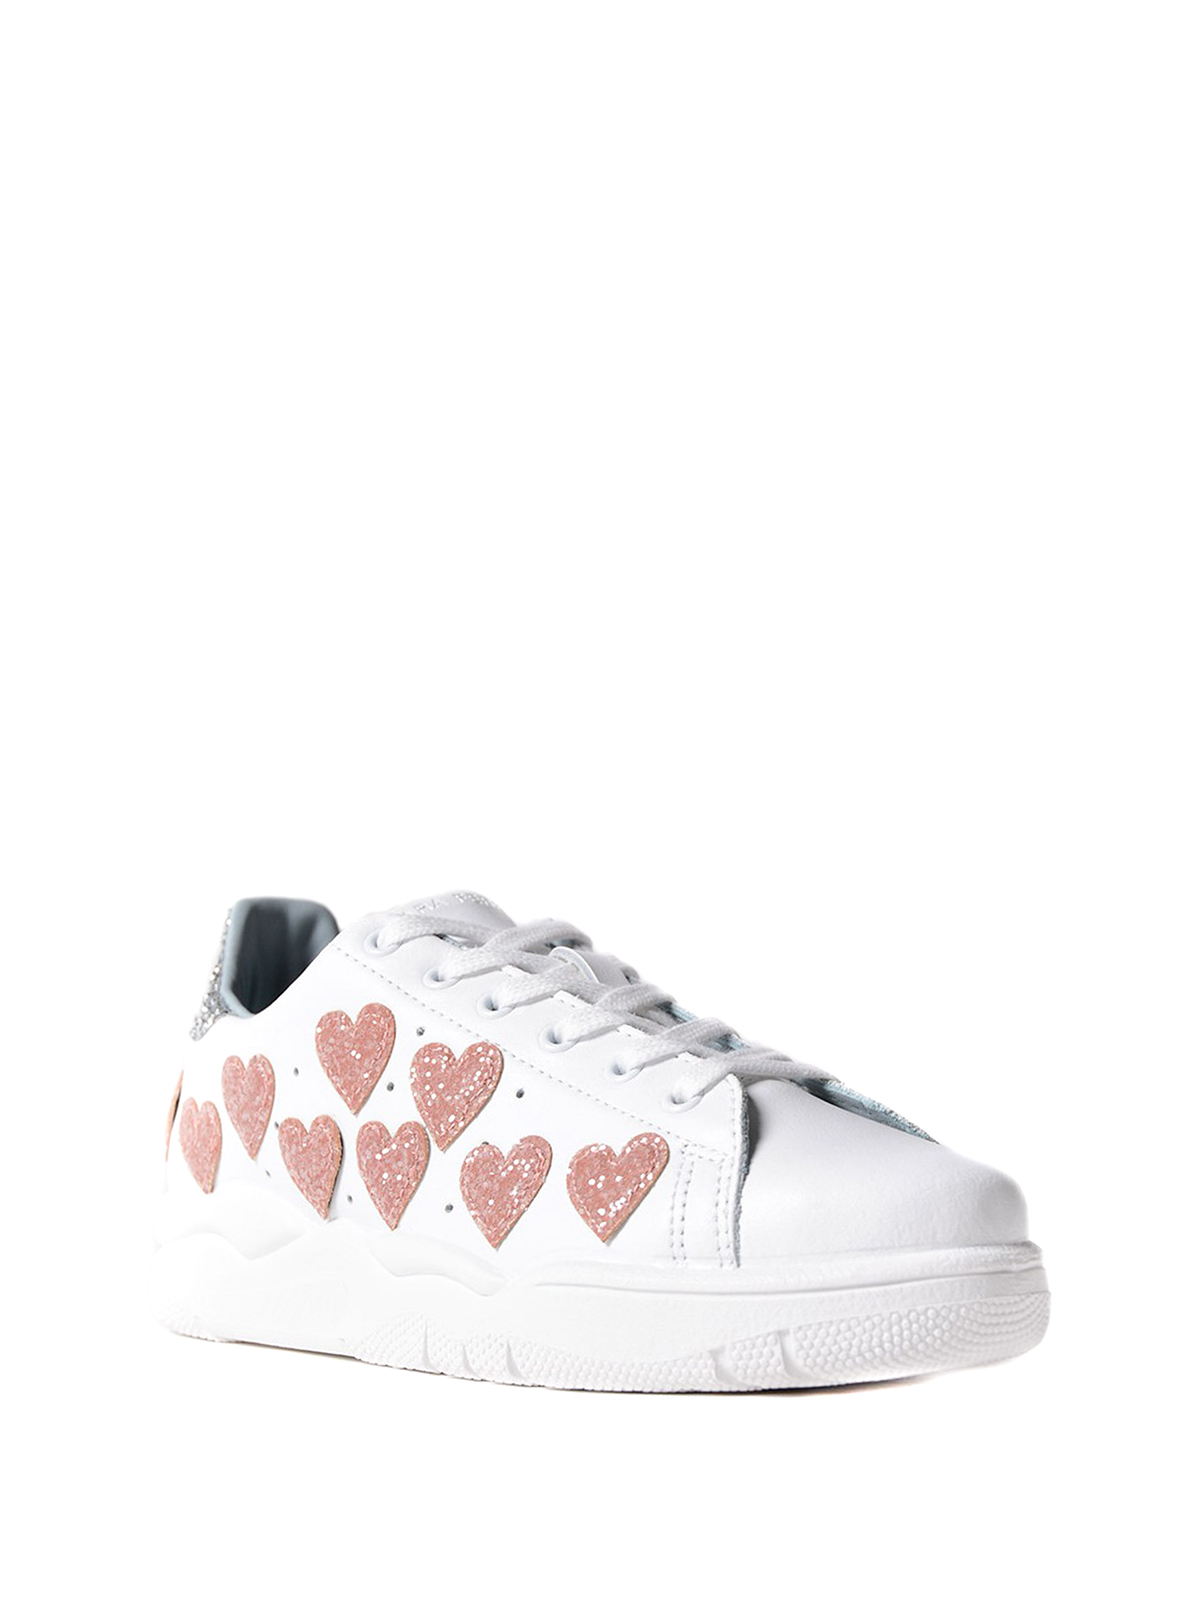 Roger sneakers with pink glitter hearts Chiara Ferragni